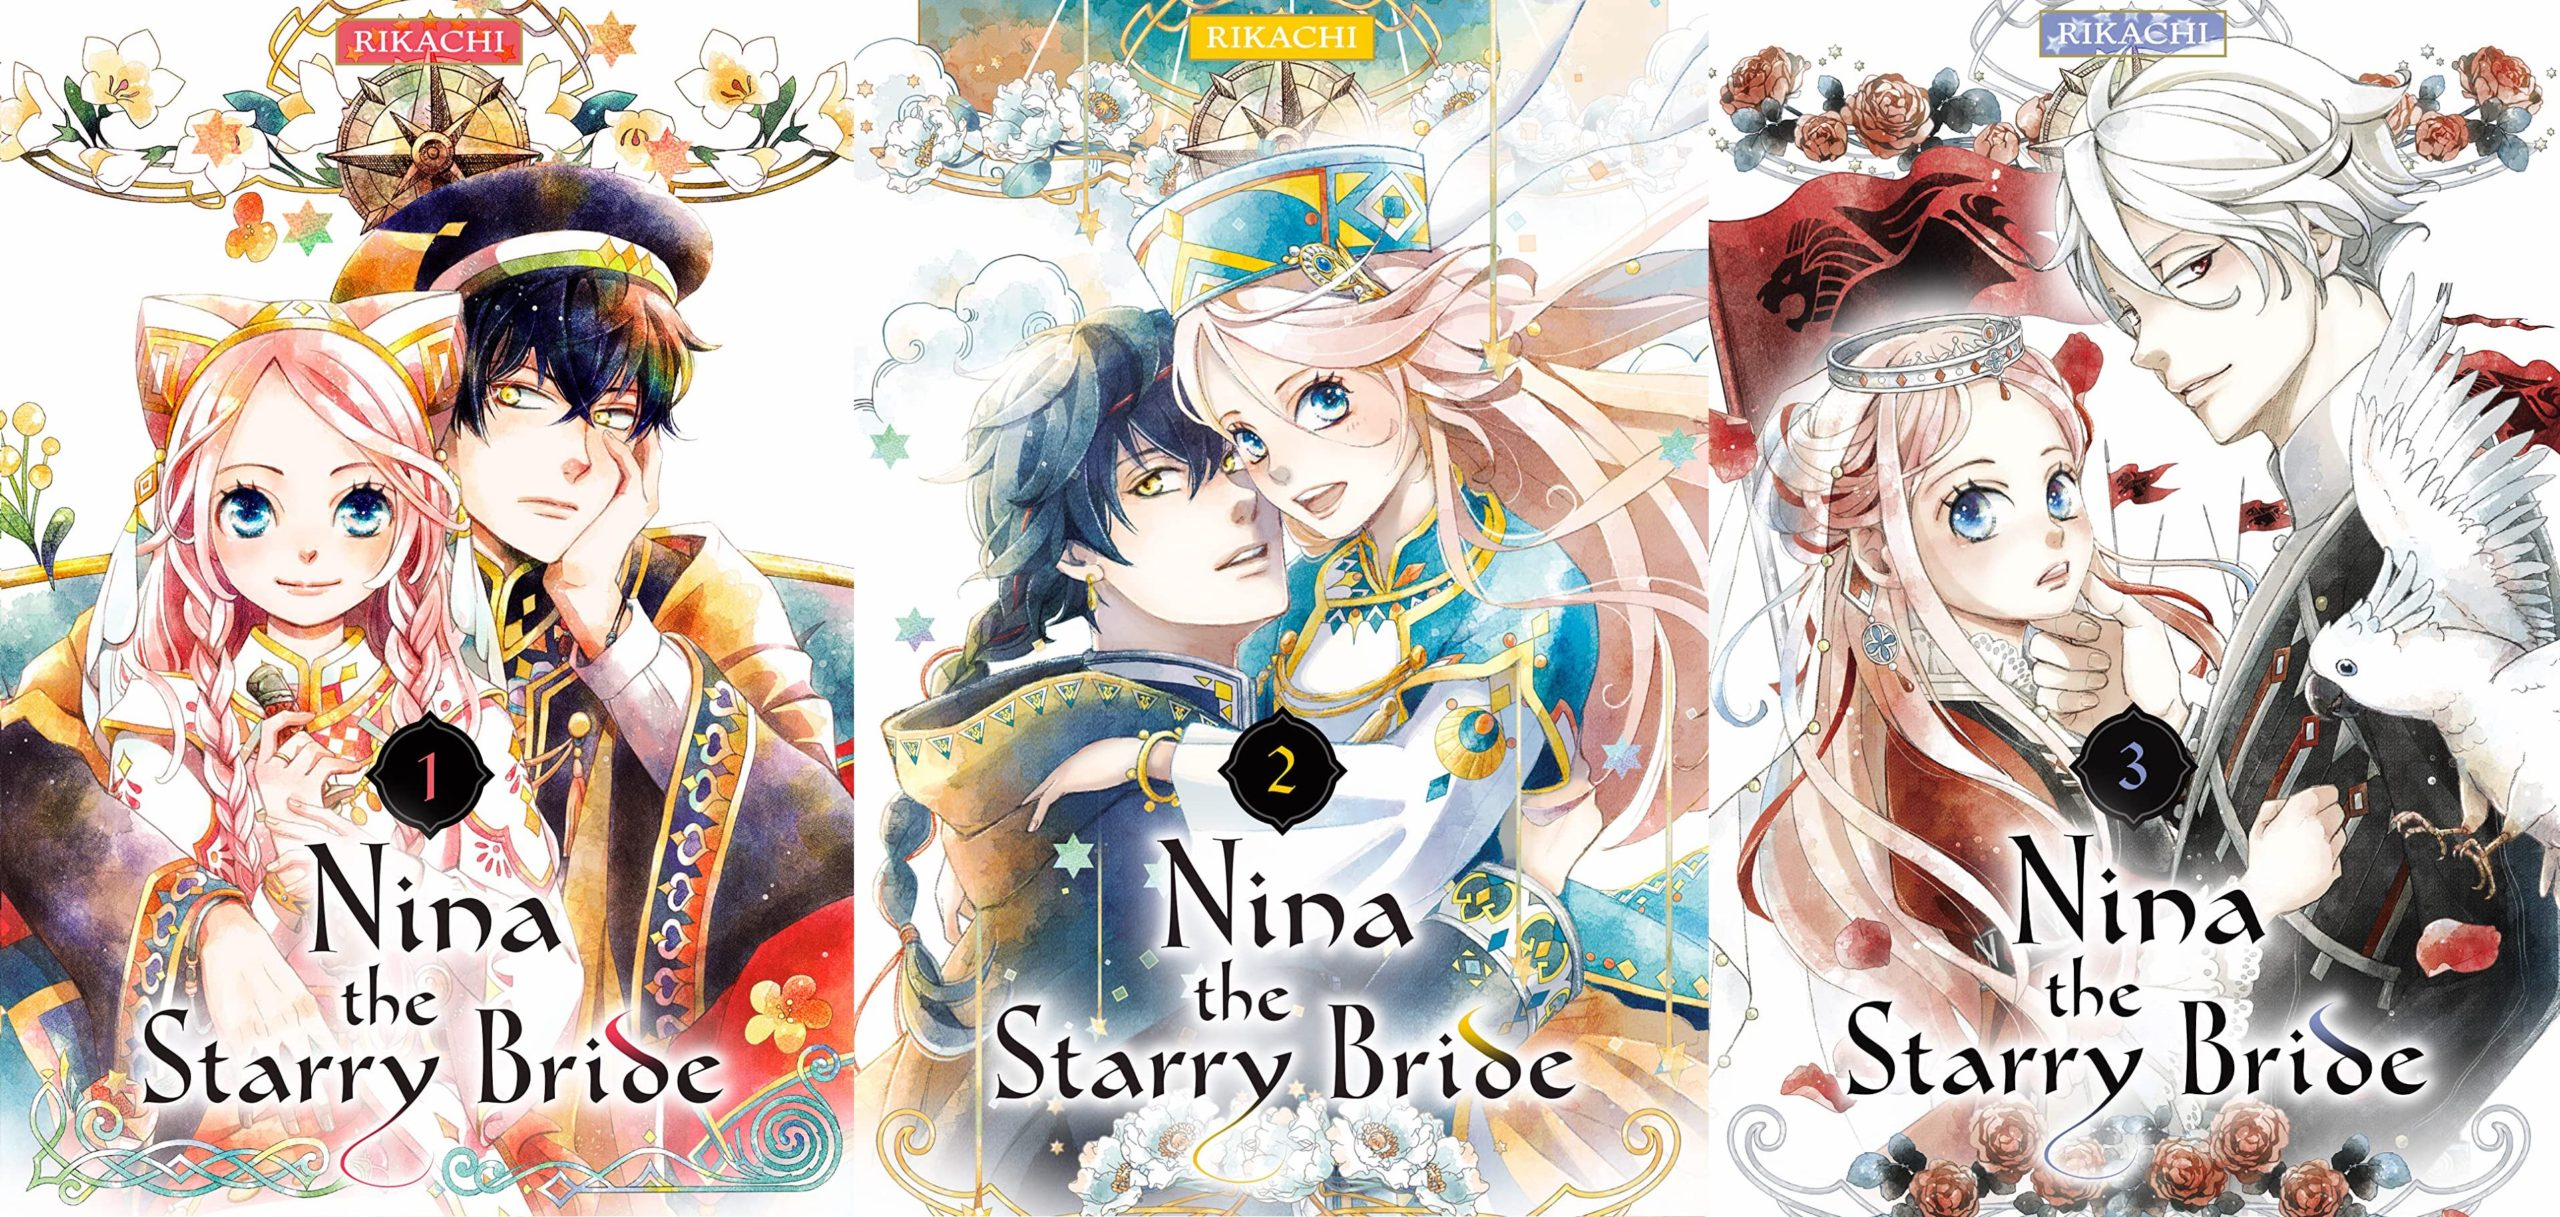 Featured image for Nina the Starry Bride Volumes 1-3 Review